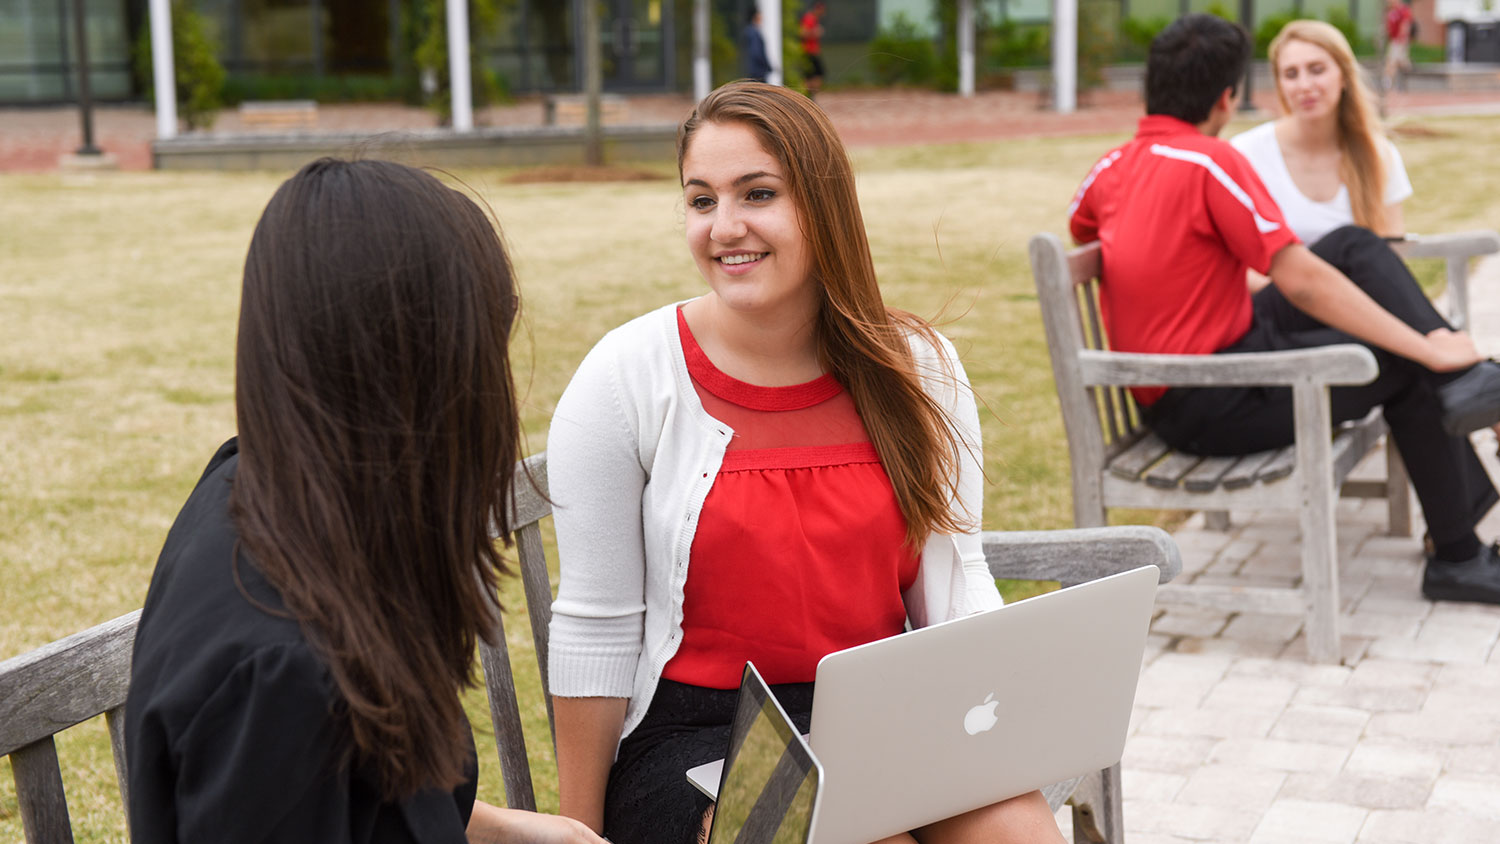 Working professionals in the Engineering Online program at NC State.